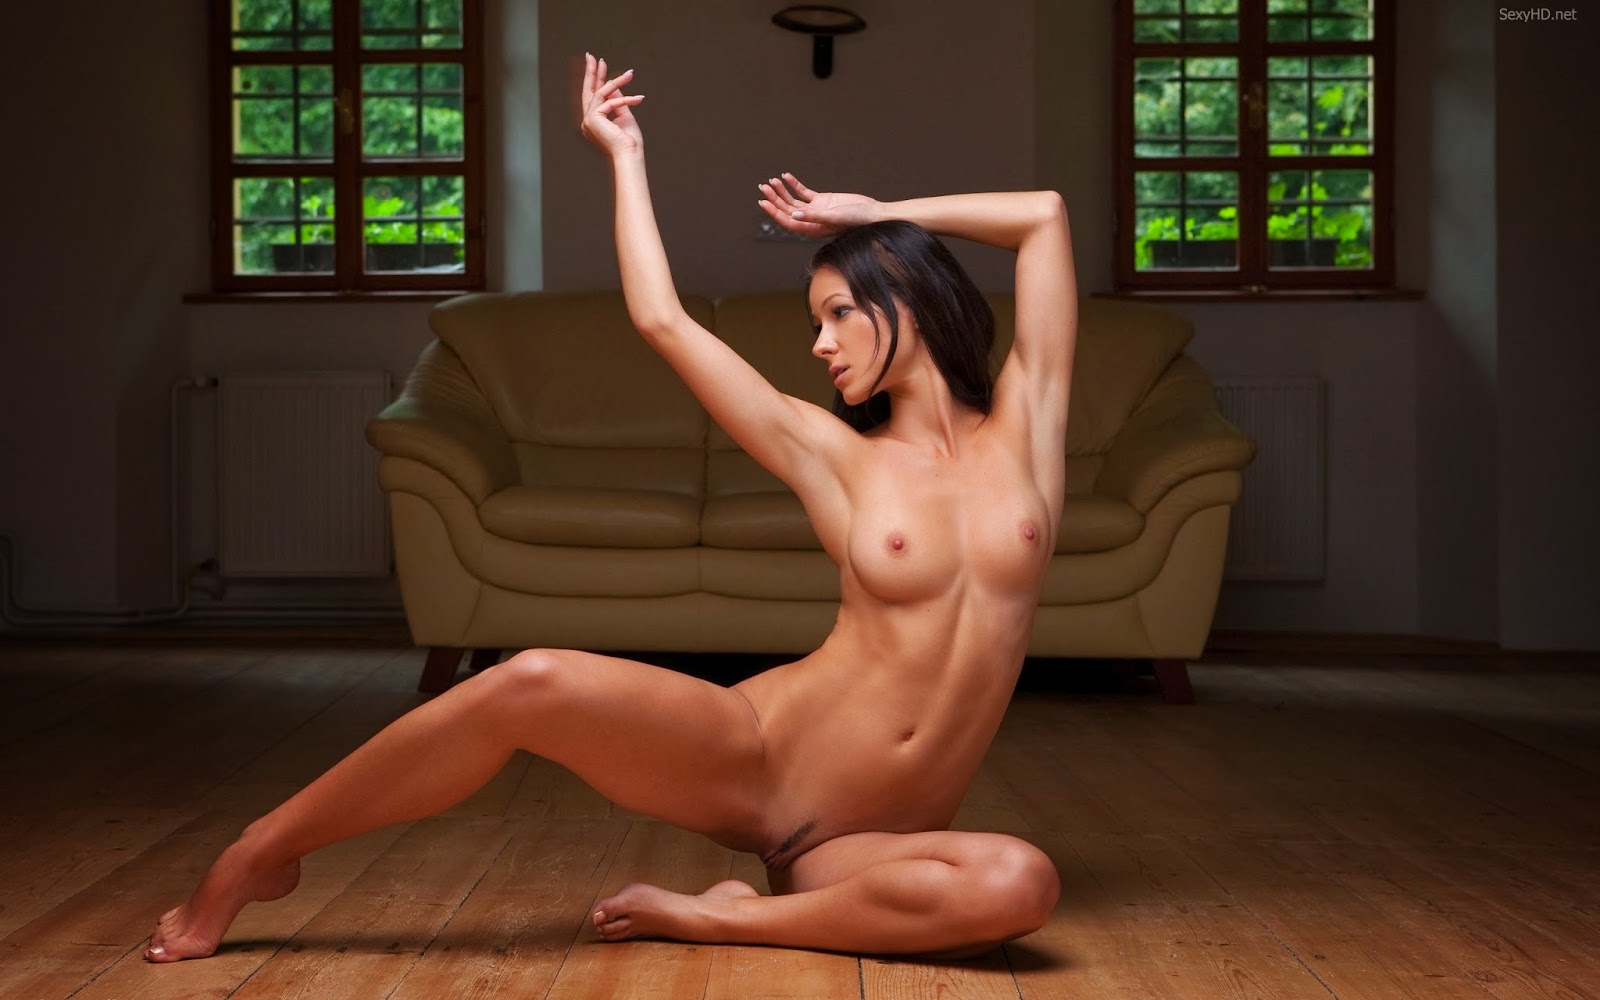 Women stretch nude, sleeping mallu nude